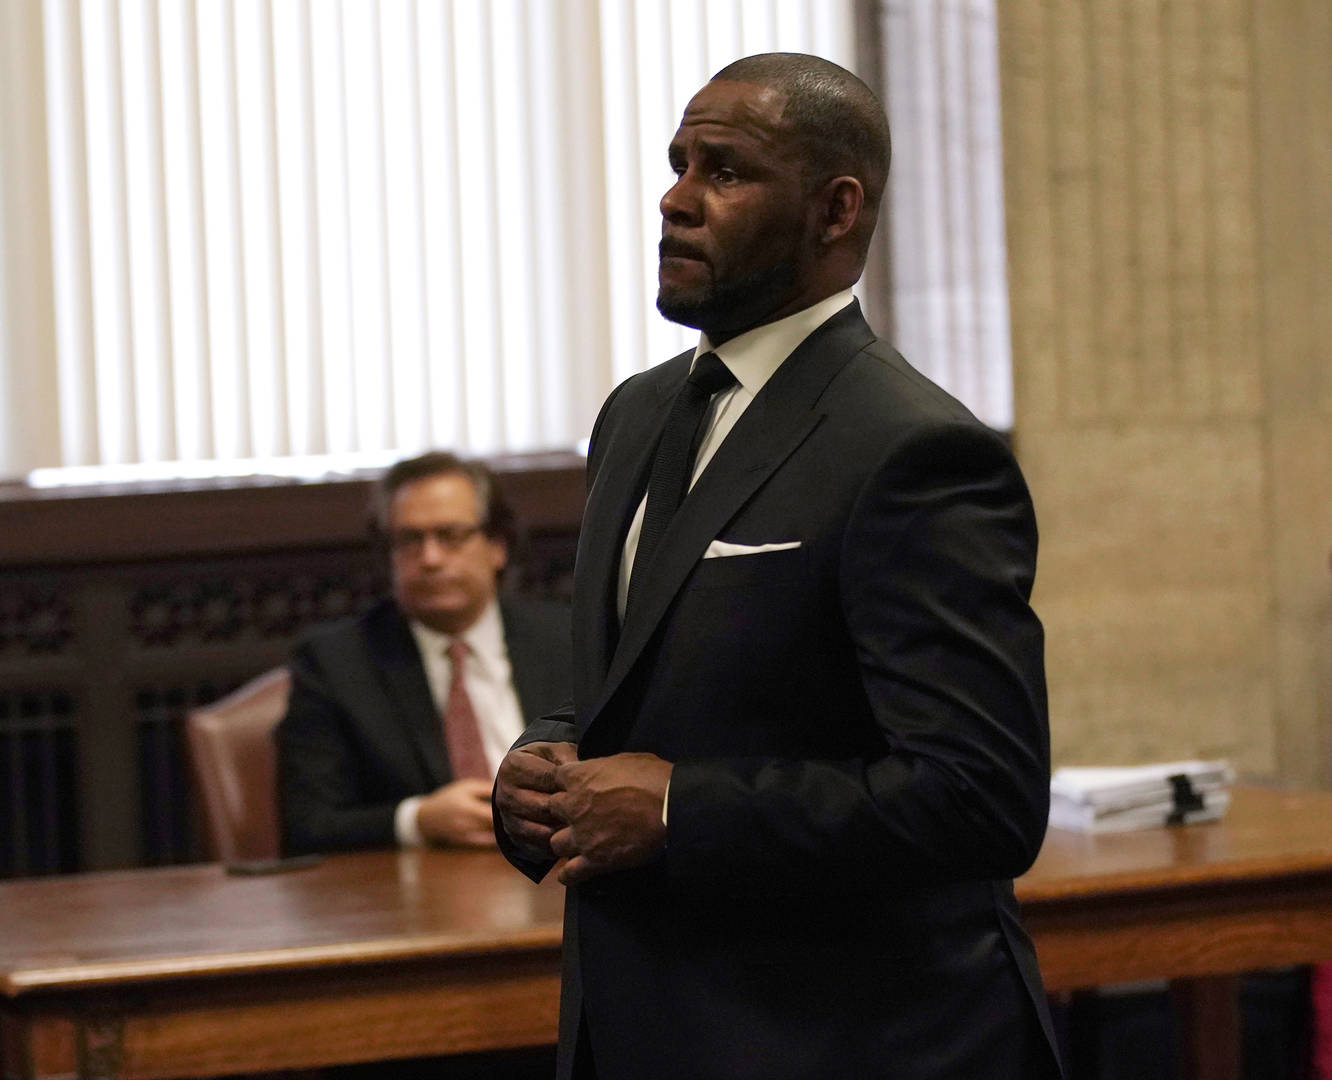 R. Kelly Hotline For Alleged Victims Receiving Calls From Women Bragging About Sexual Encounters